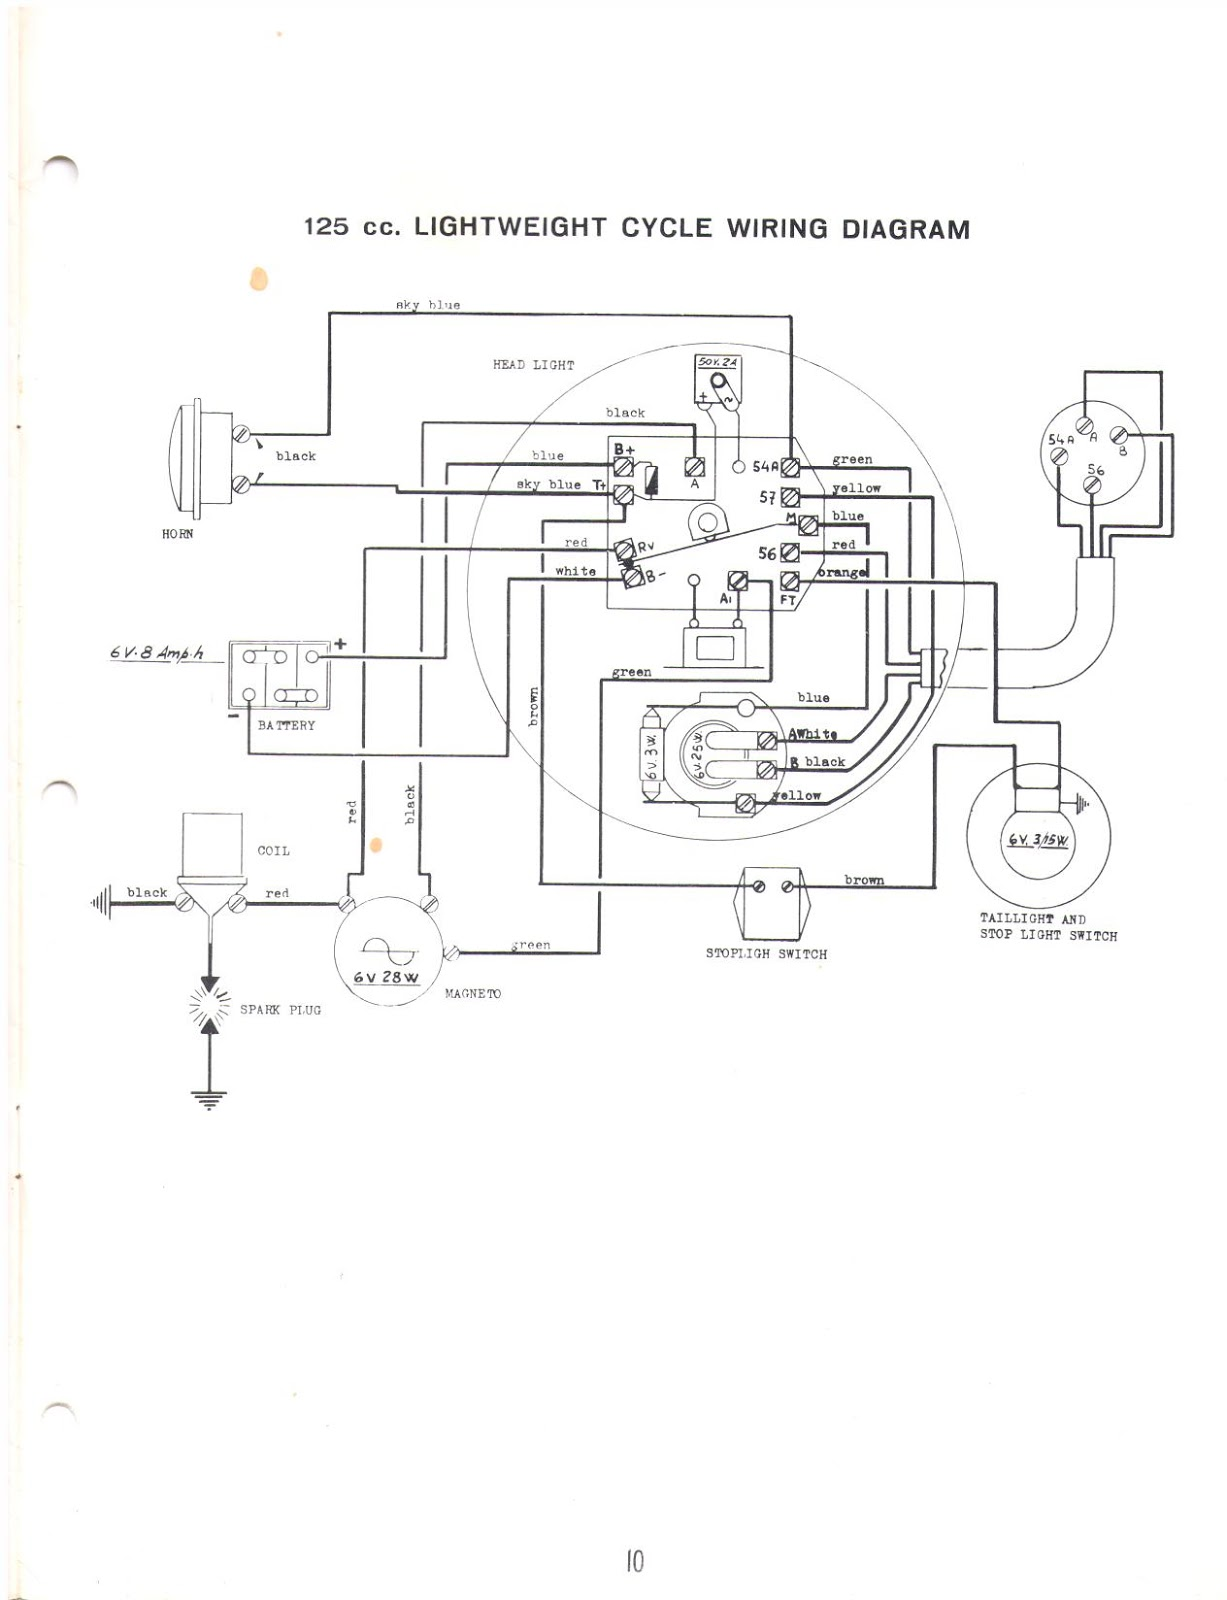 Koso Replica Wiring Diagram